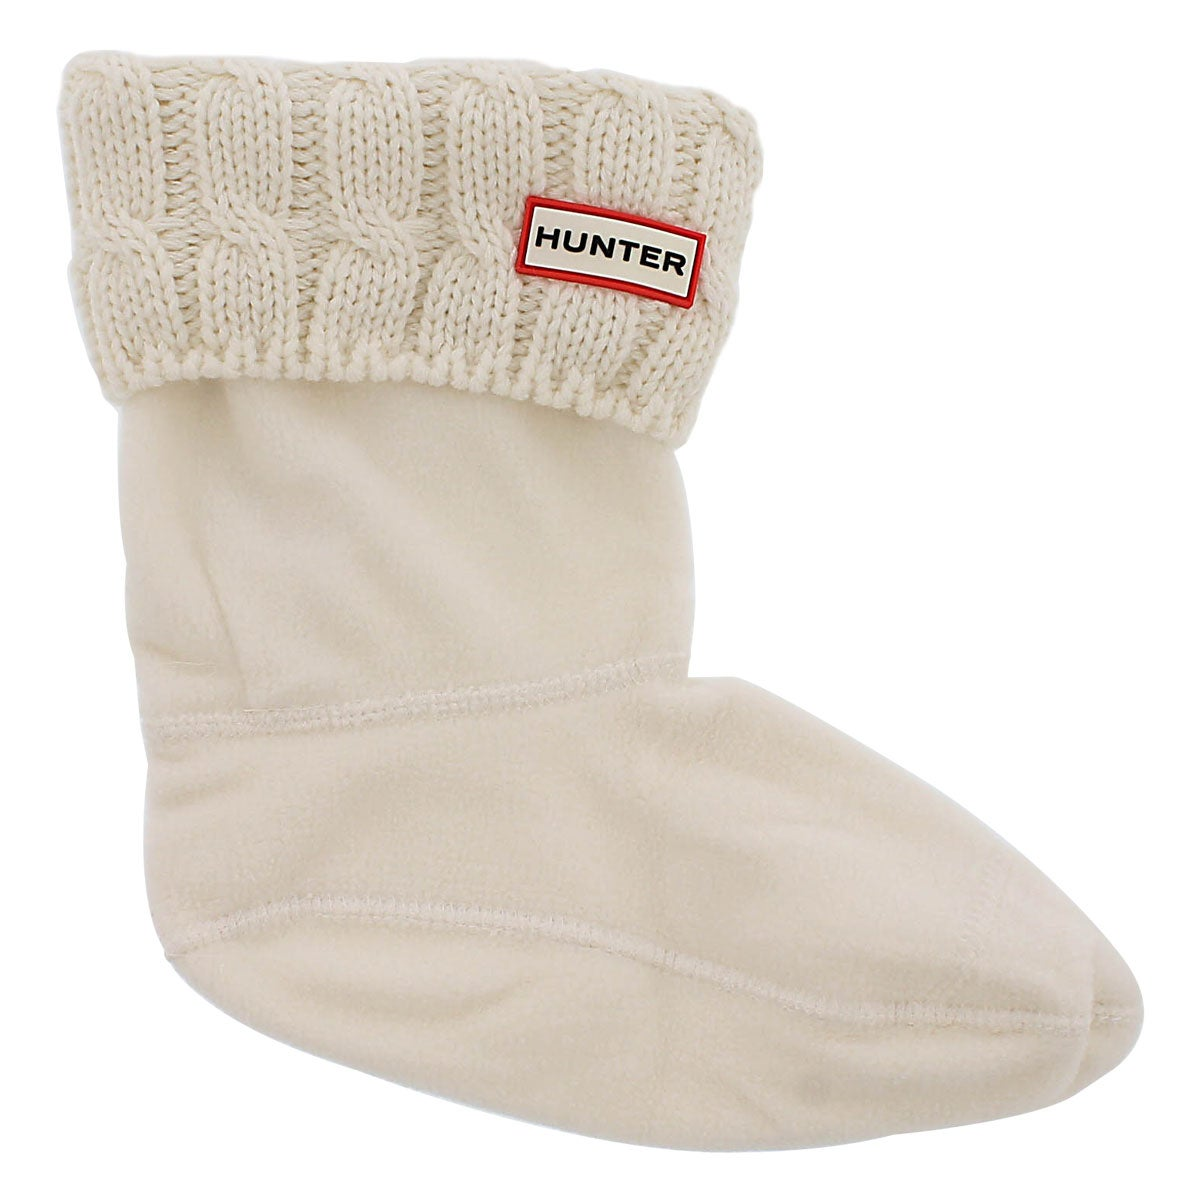 Lds 6 Stitch Cable white short boot sock